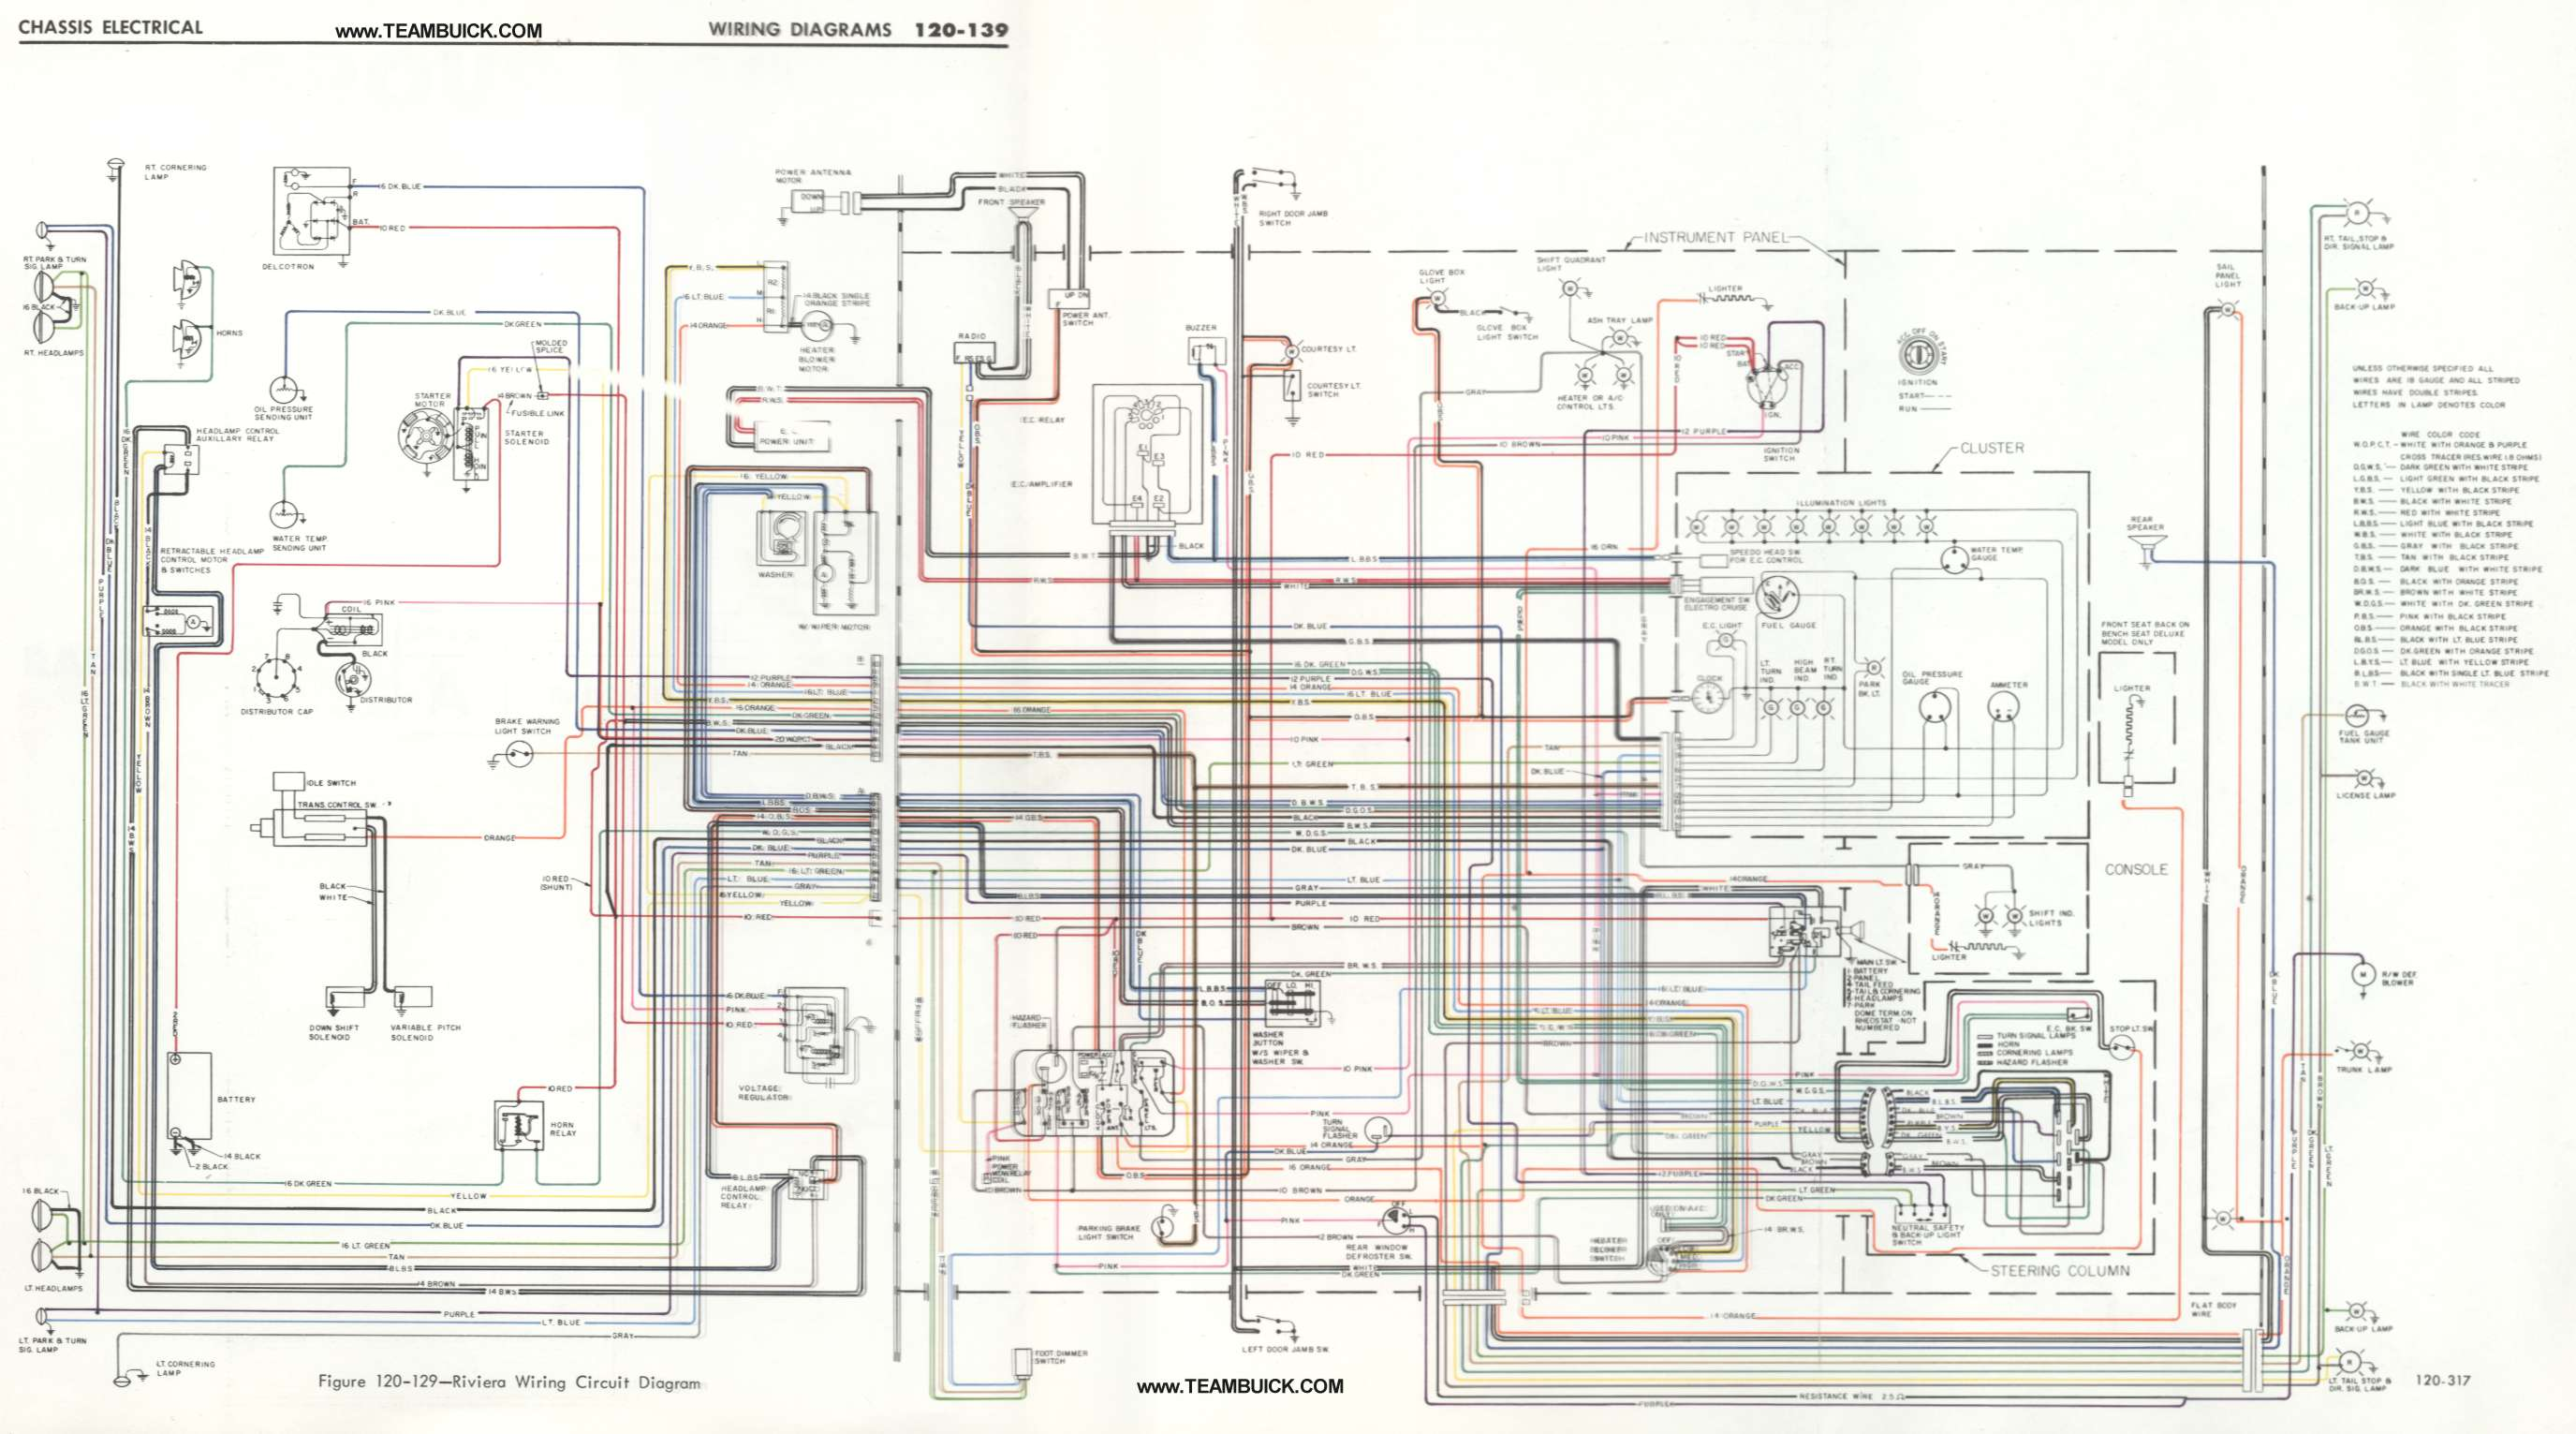 67_riviera_wiring 1967 buick riviera wiring diagram*** Mercedes Wiring Diagram Color Codes at webbmarketing.co